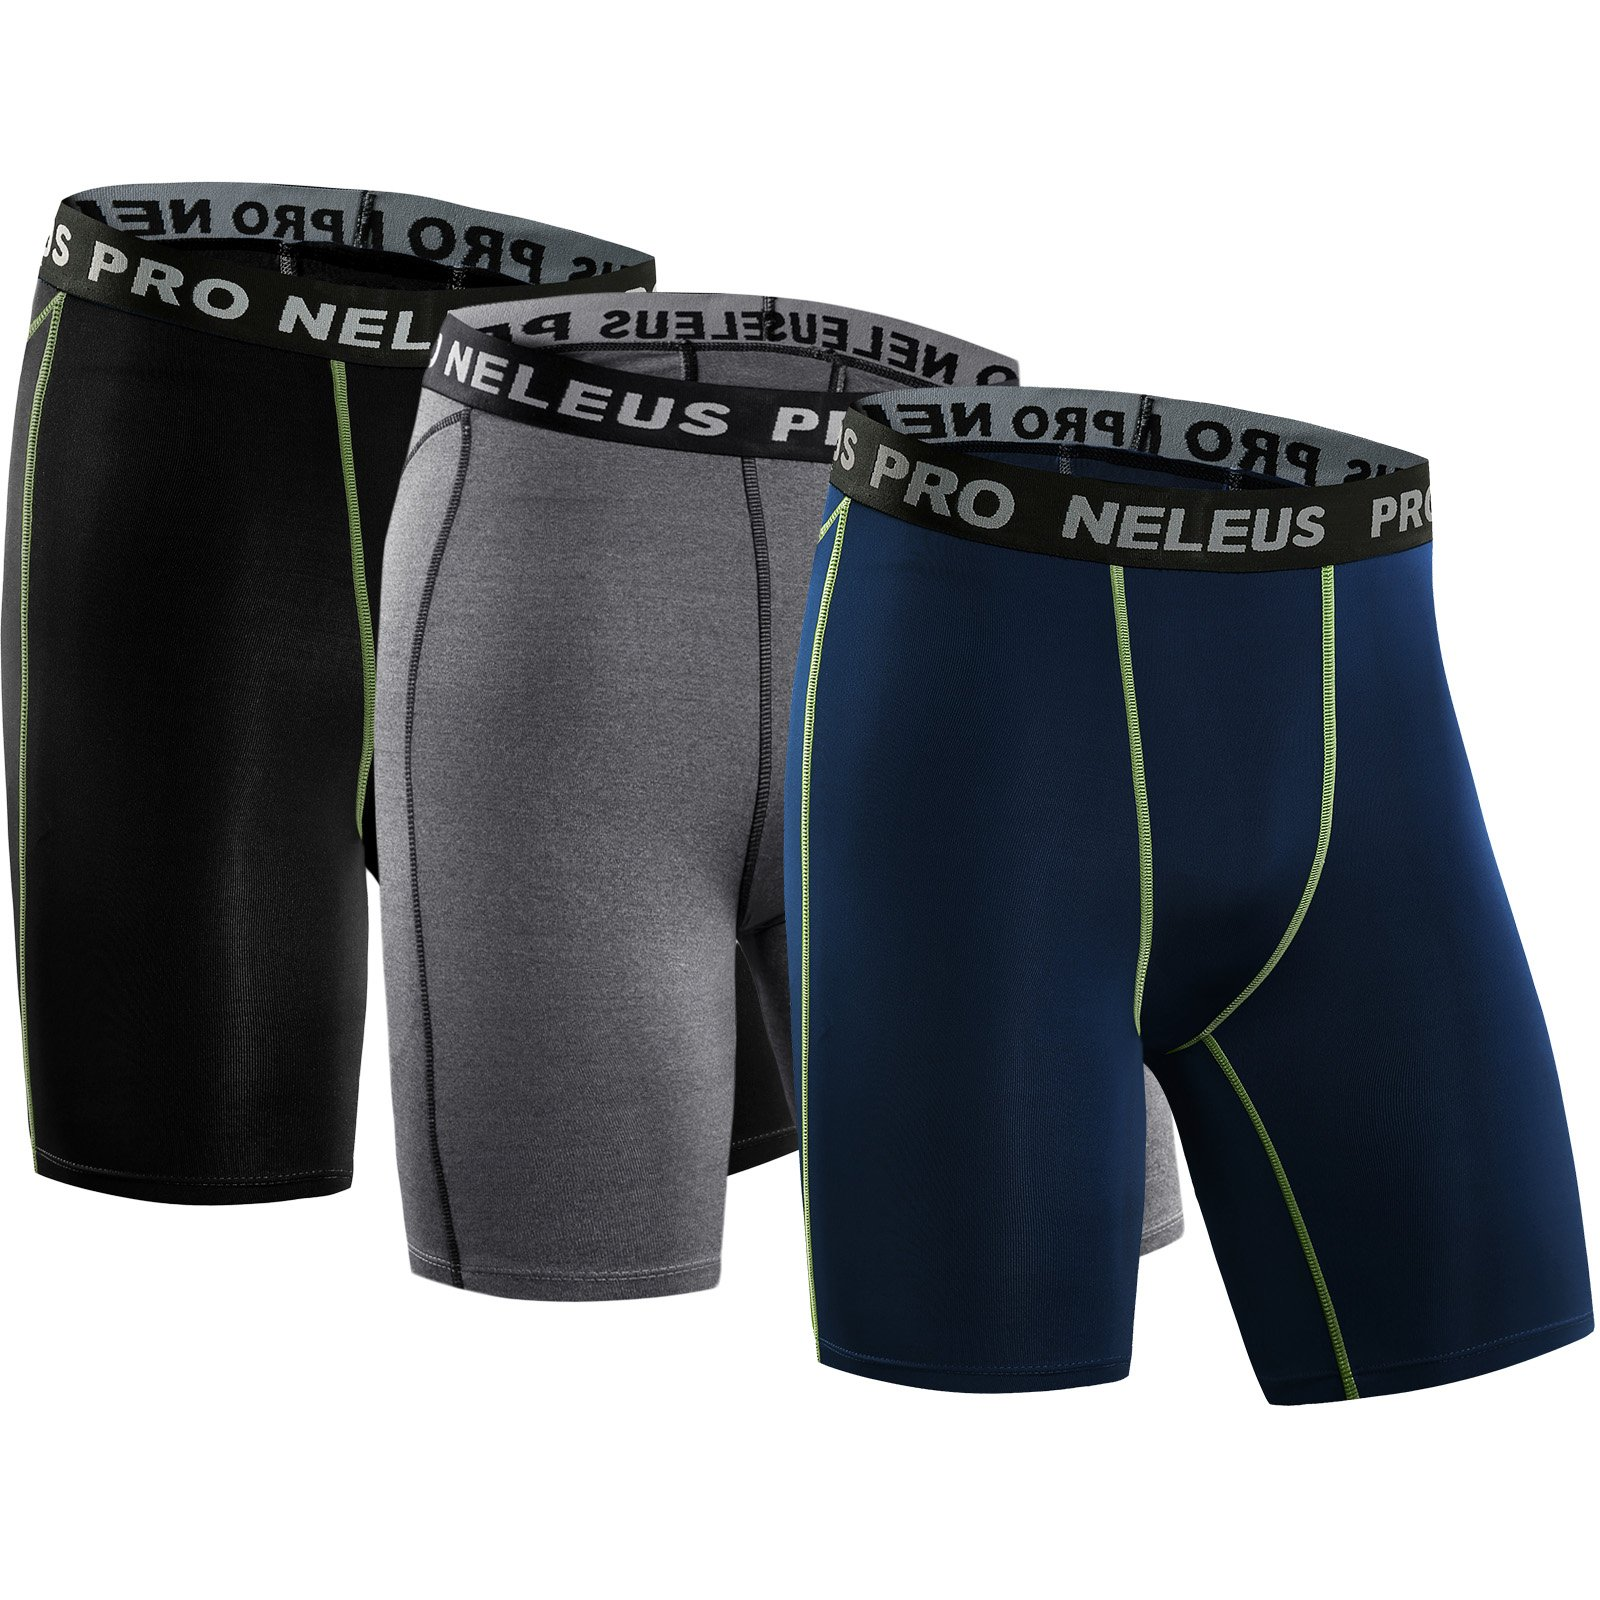 Neleus Men's 3 Pack Compression Short,047,Black,Grey,Navy Blue,US S,EU M